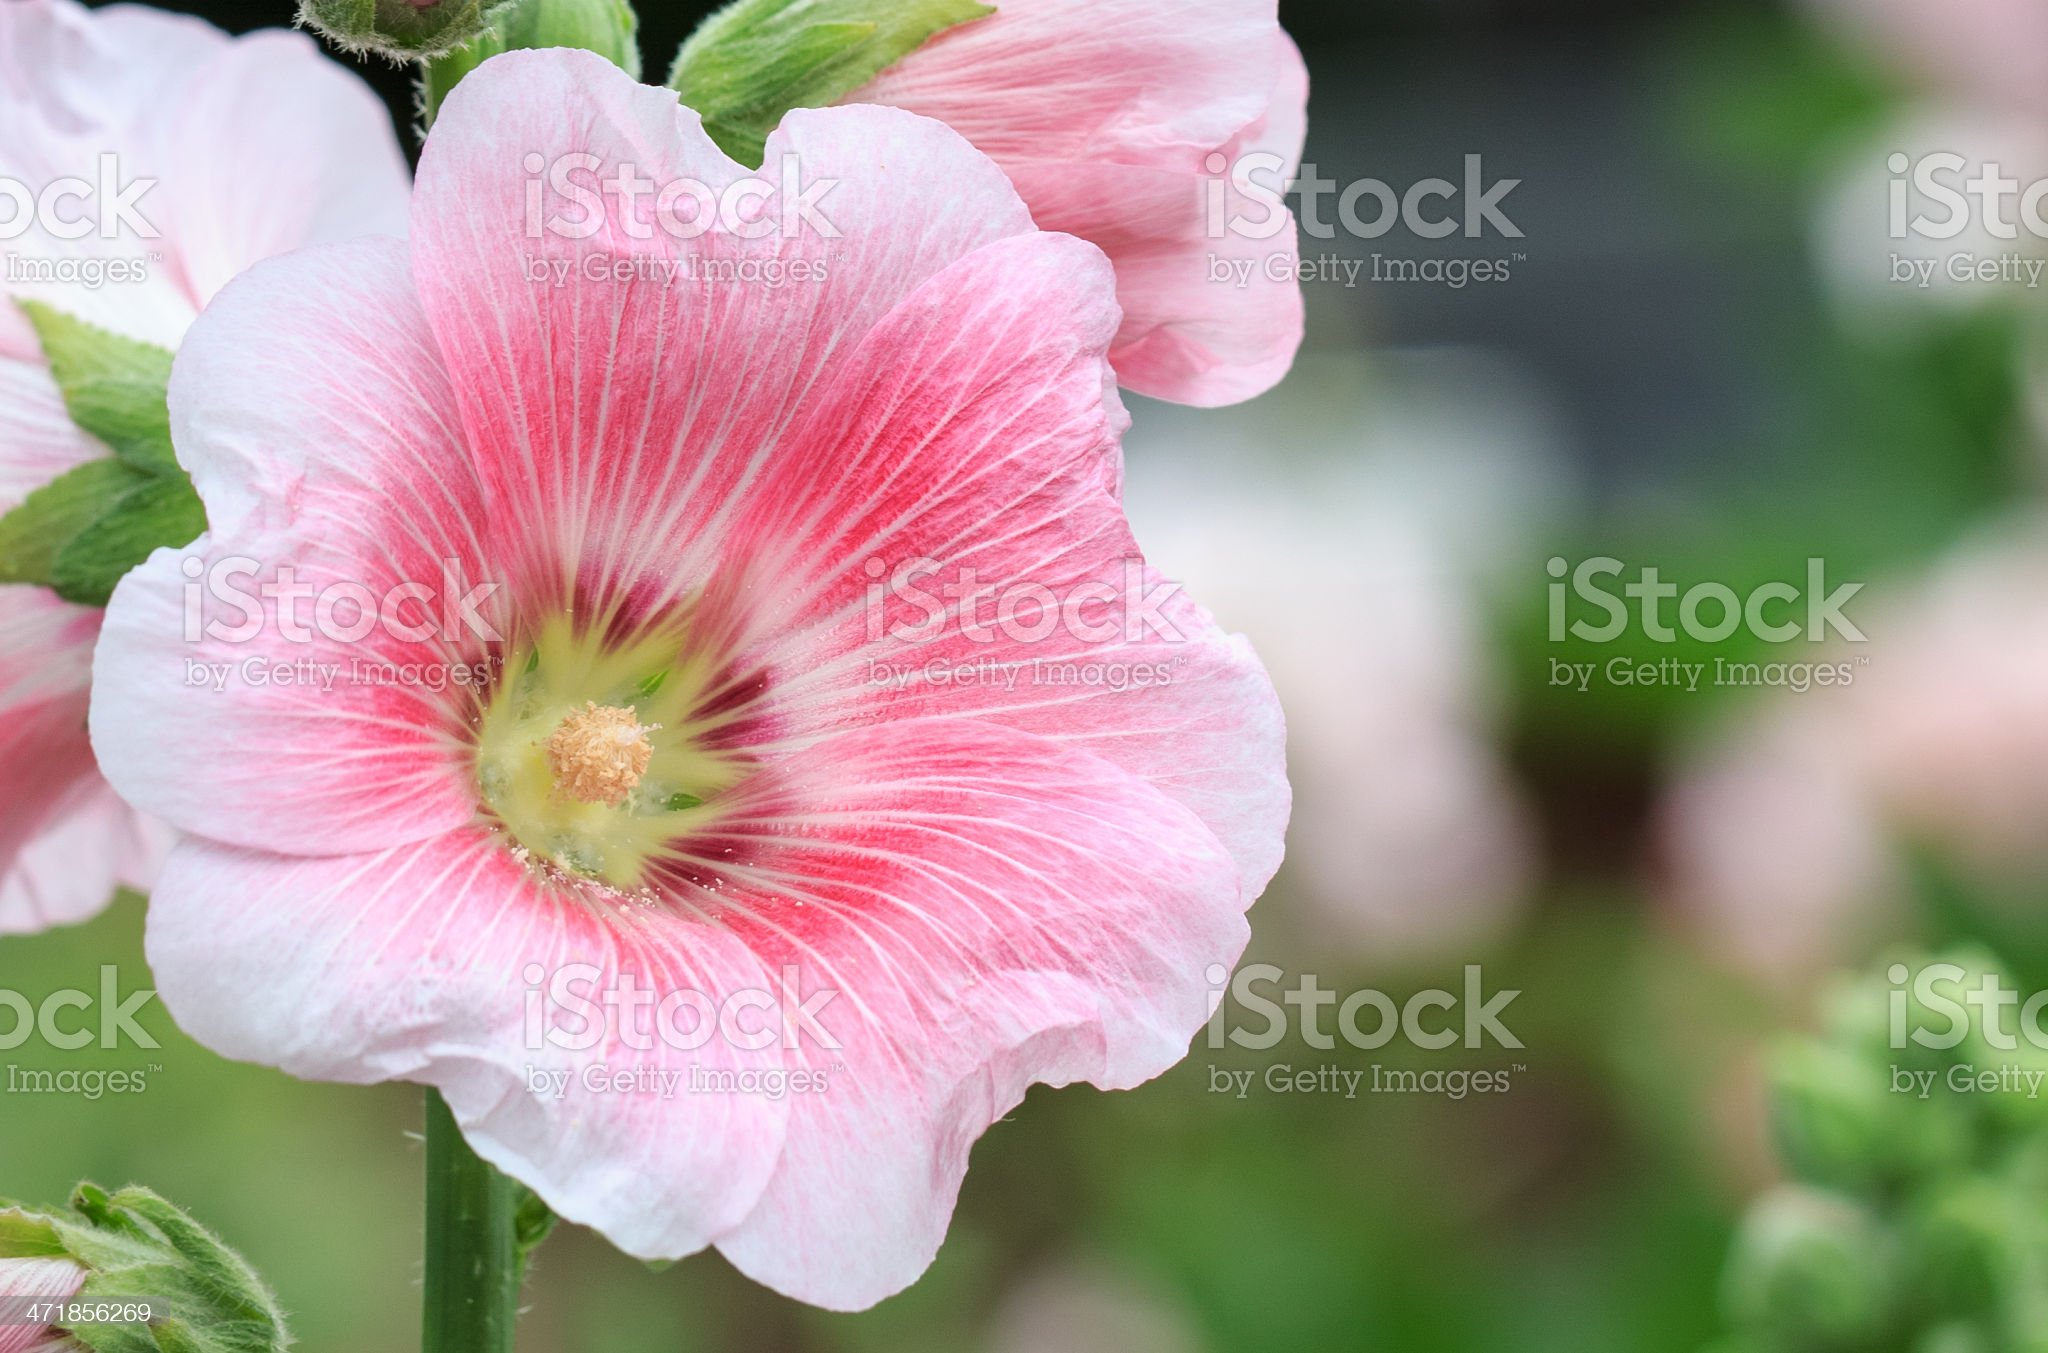 Pink mallow in Blurred Background, Hollyhock, Alcea rosea, Closeup royalty-free stock photo